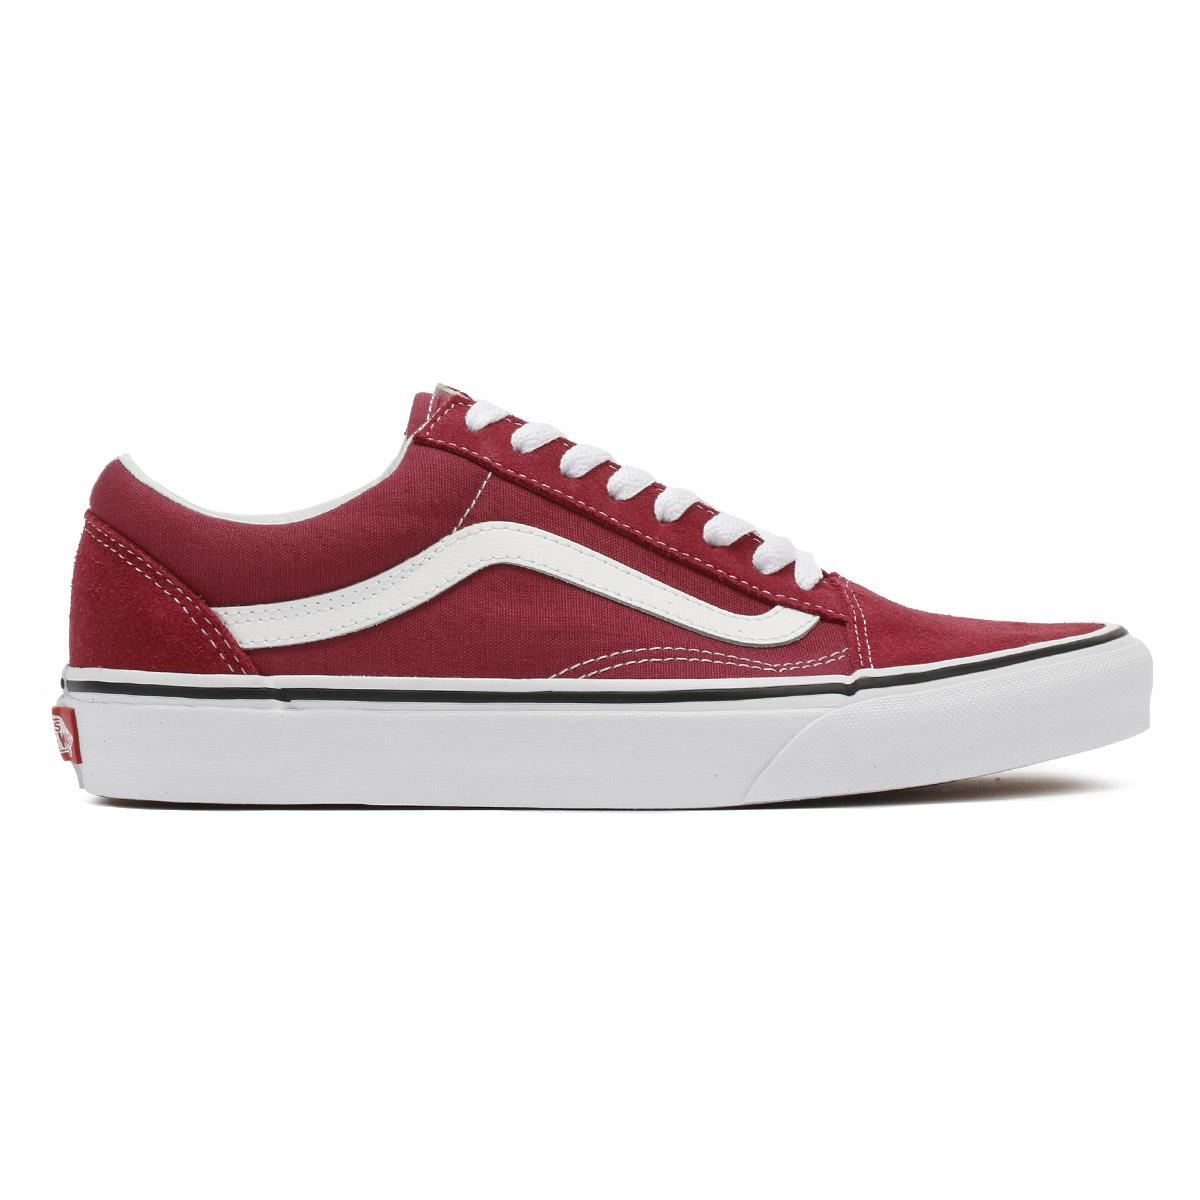 fd793e67caf4 Vans - Dry Rose Red   True White Old Skool Trainers Women s Shoes  (trainers). View fullscreen